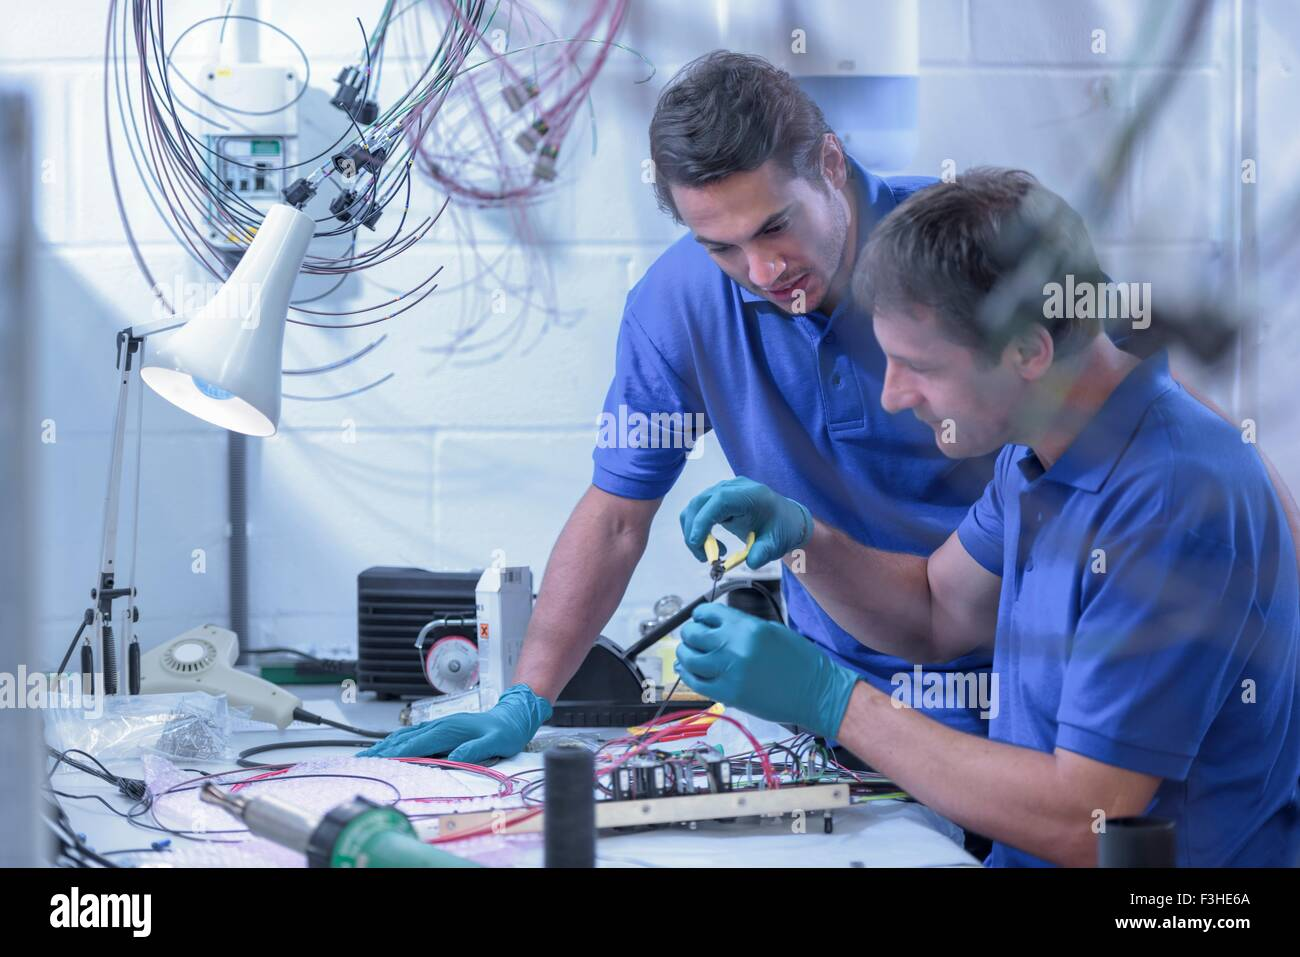 Two male workers assembling electronics in electronics factory - Stock Image